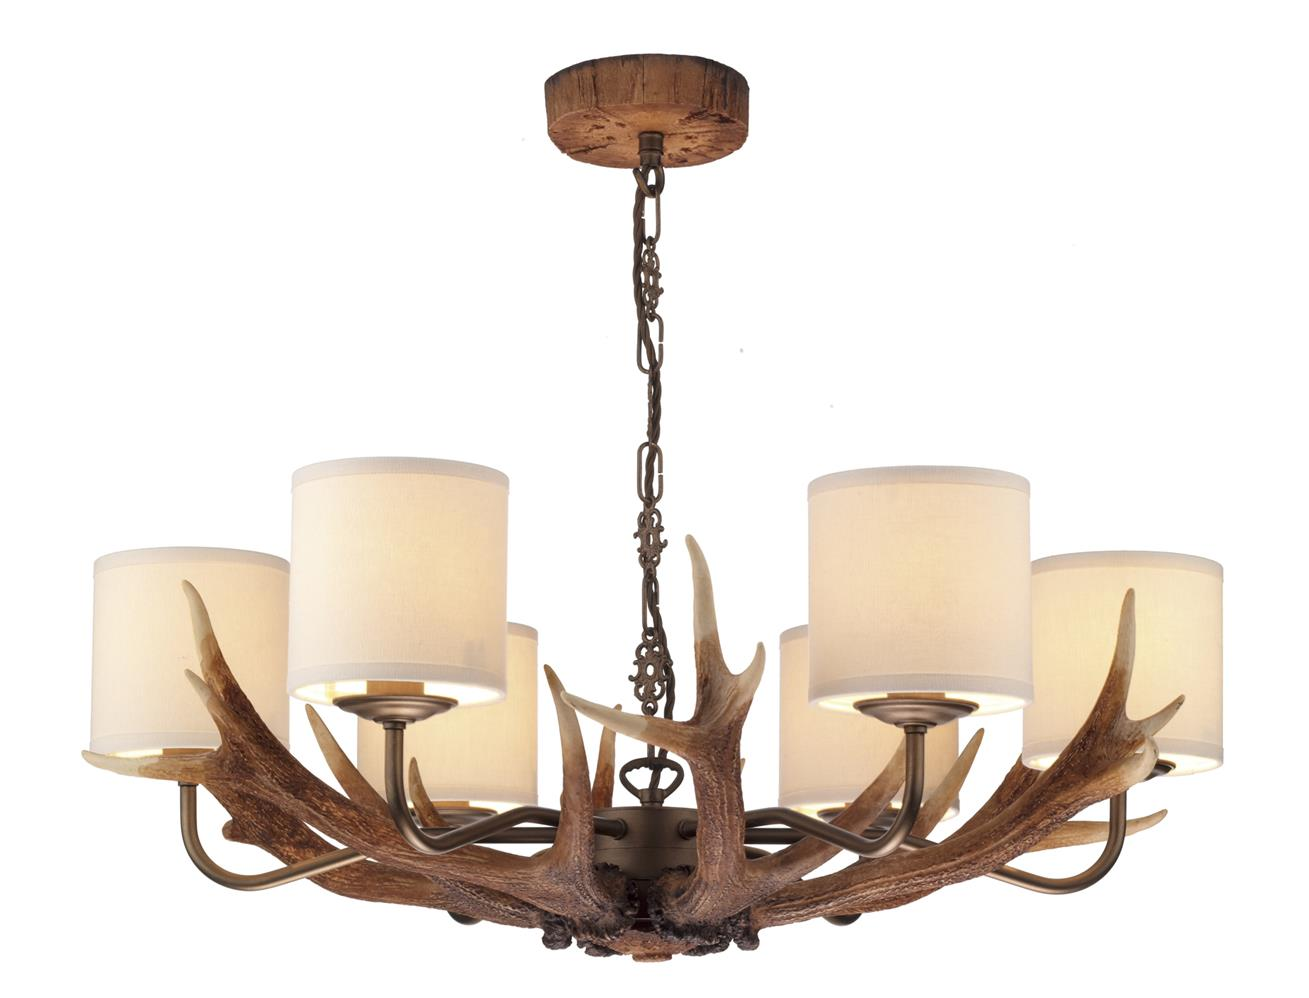 ANT0629 Antler 6 Light Pendant Chandelier With Cream